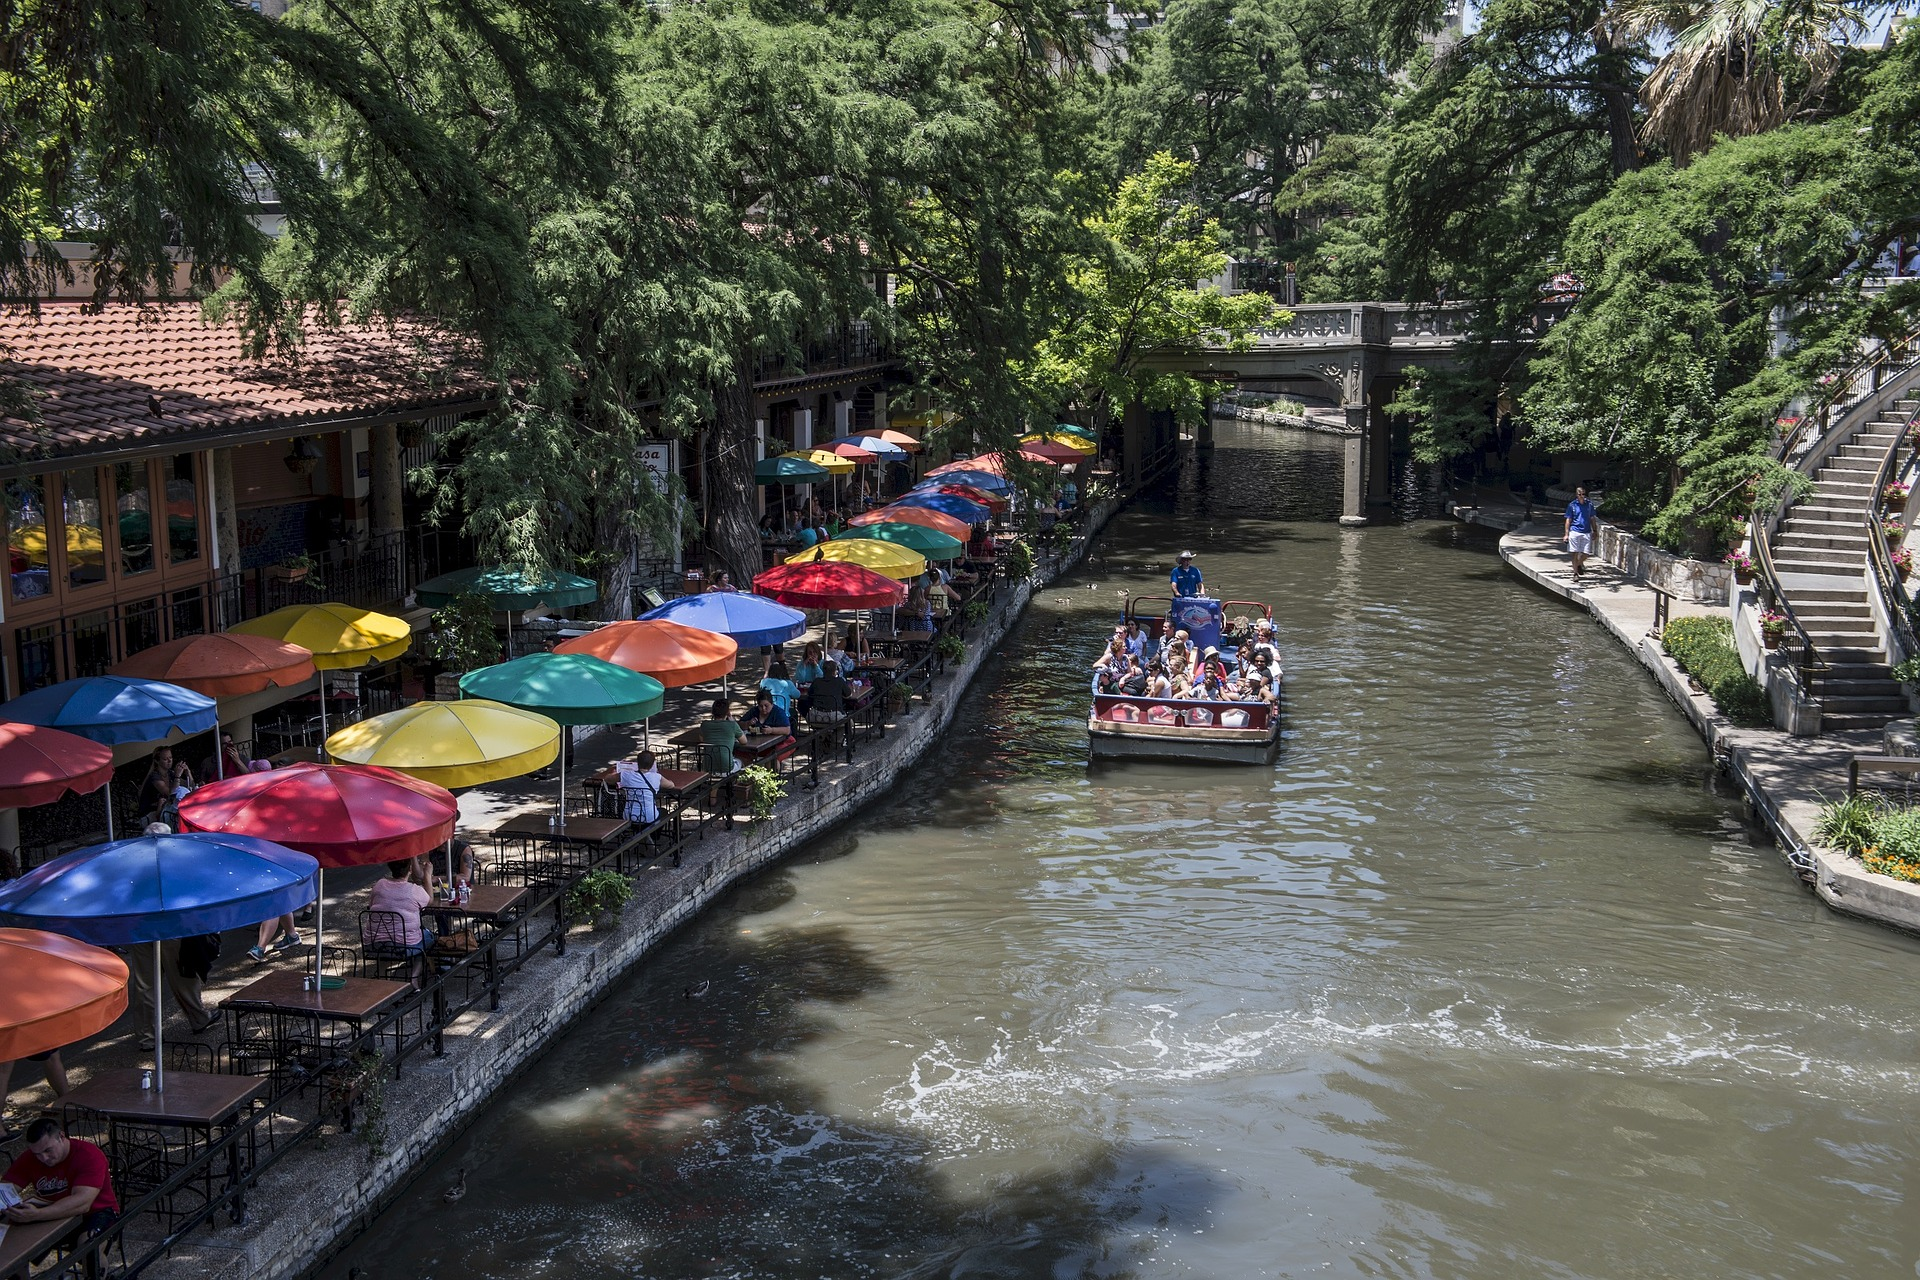 riverwalk.jpg